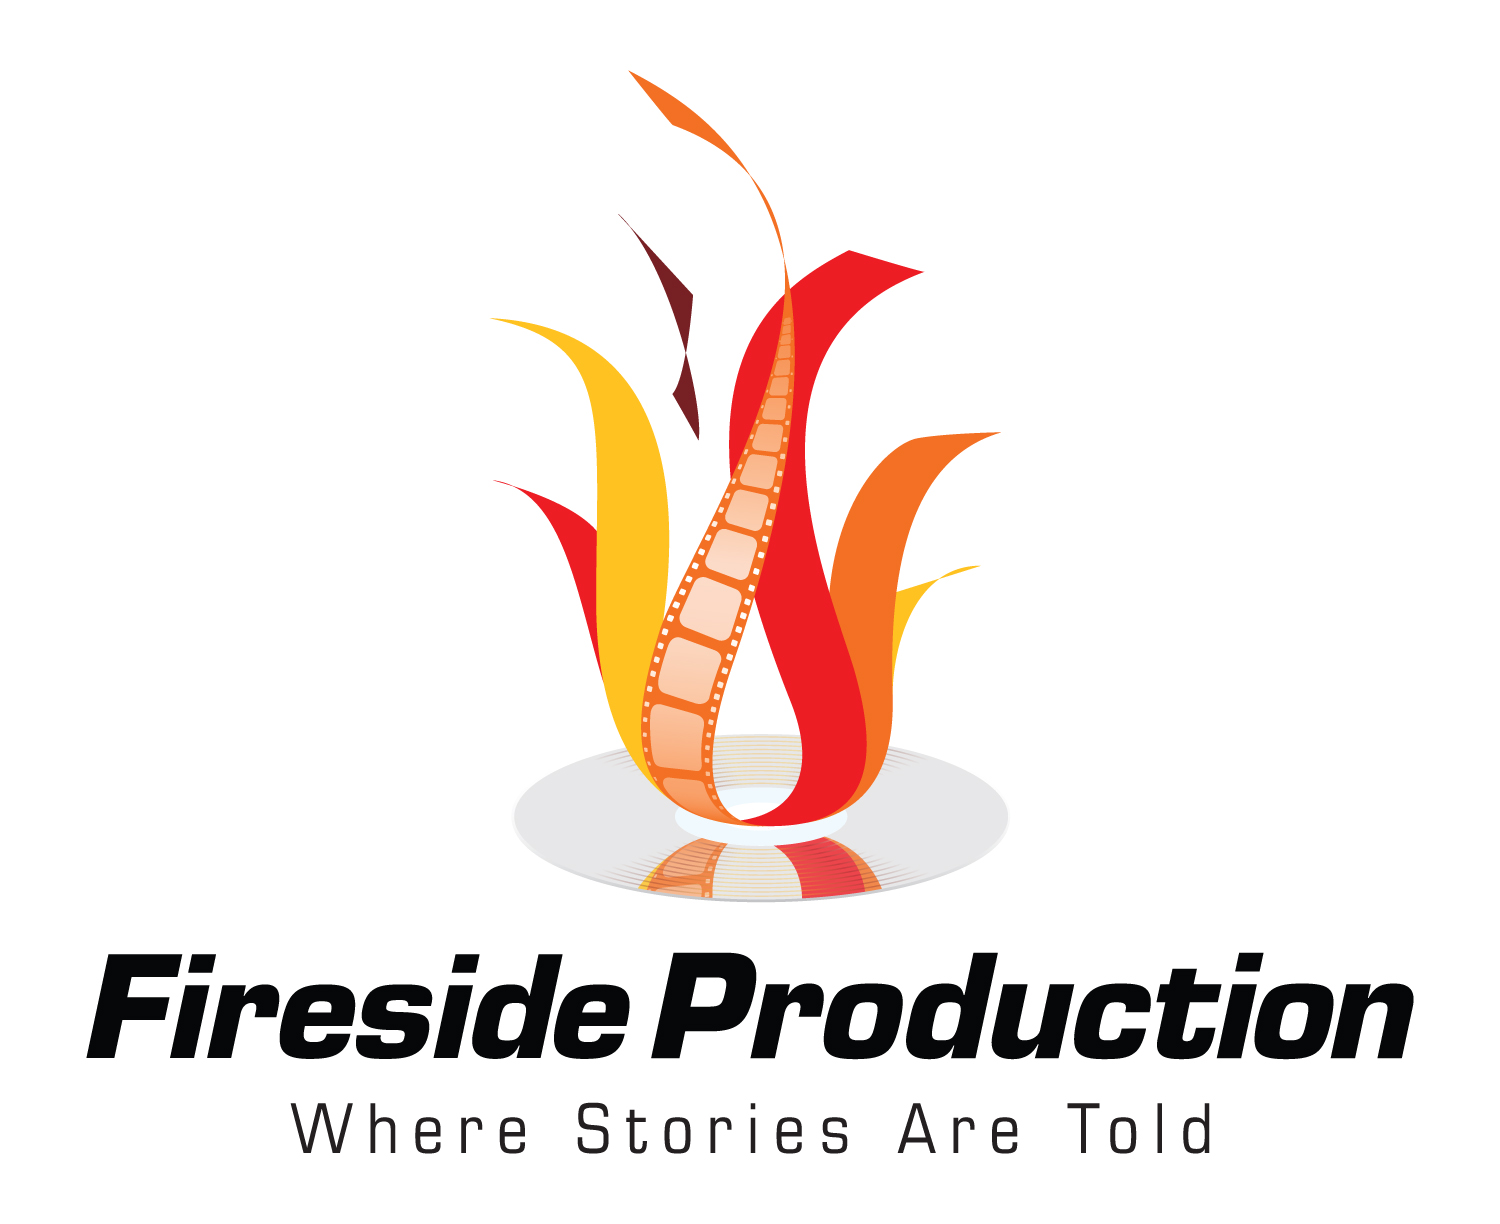 Fireside Production